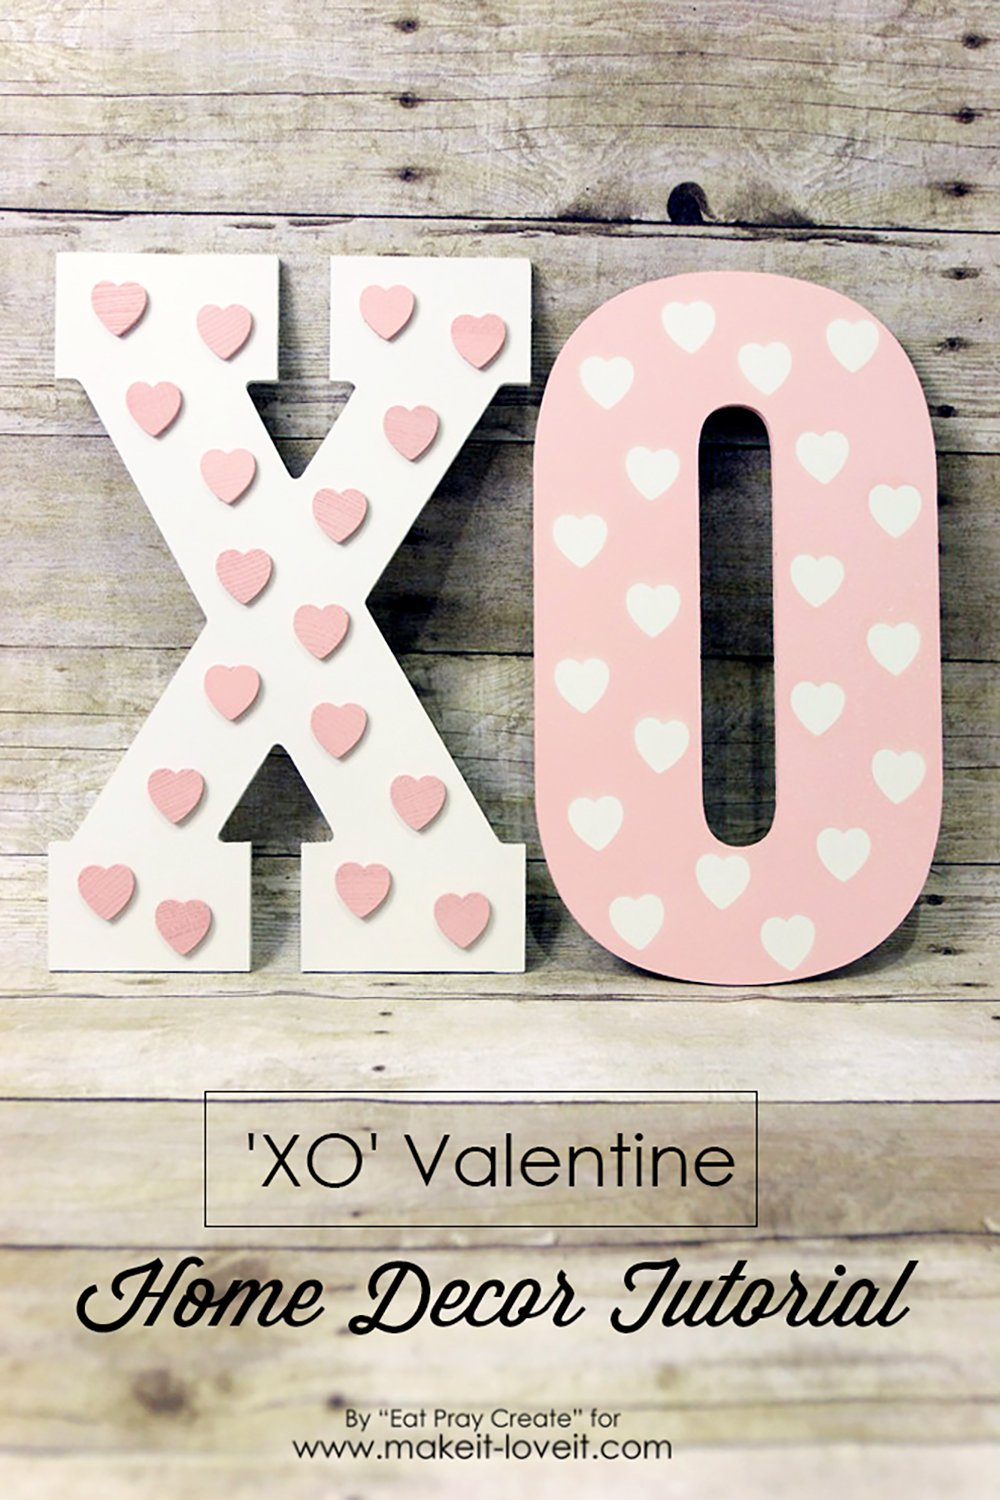 Xo valentine home decor tutorial 2 1